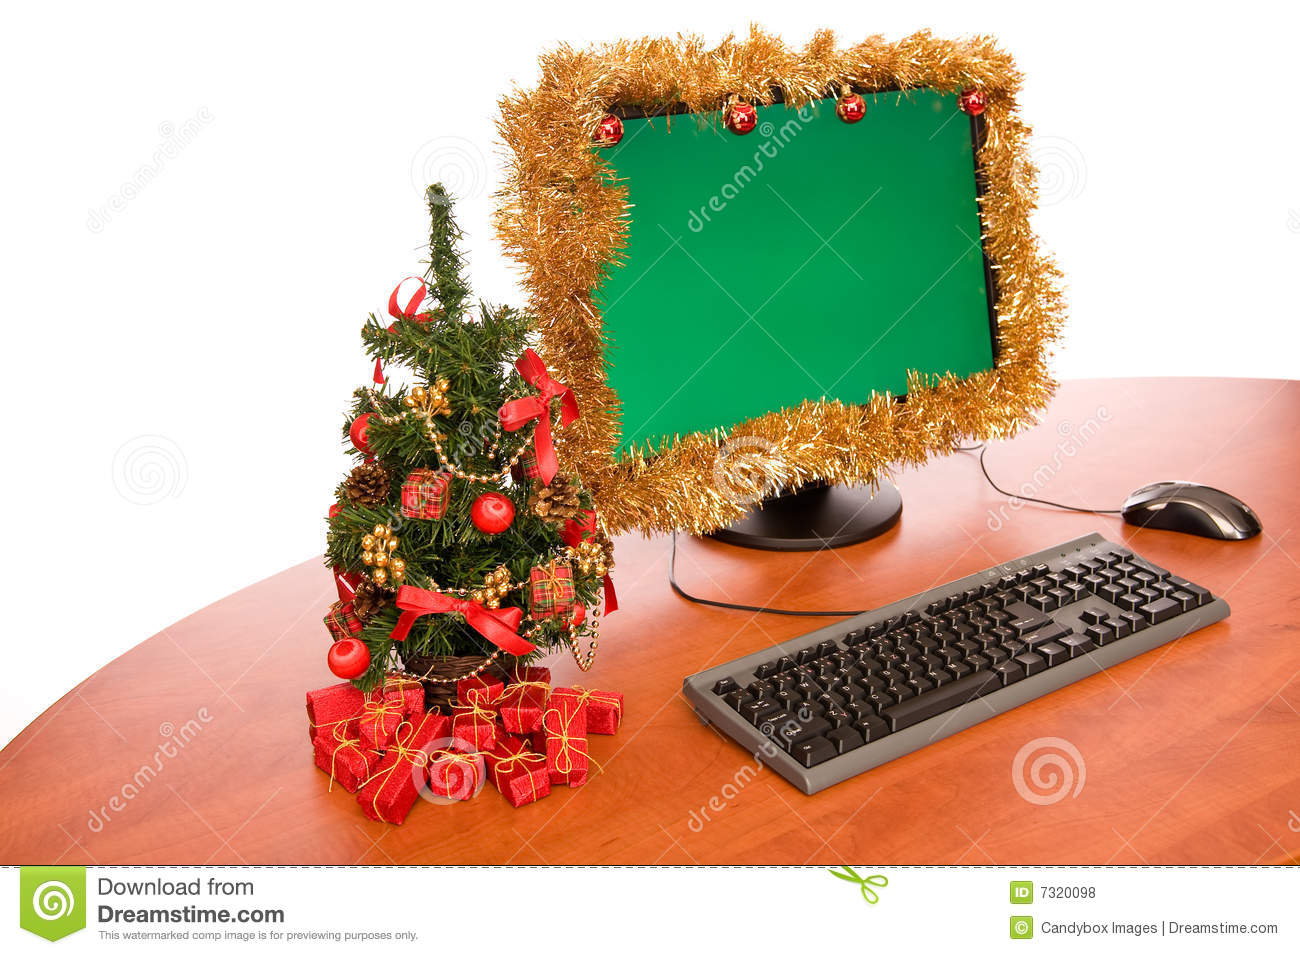 christmas decoration office. Office Desk With Christmas Decoration Stock Photo - Image Of Green, Paper: 7320098 H